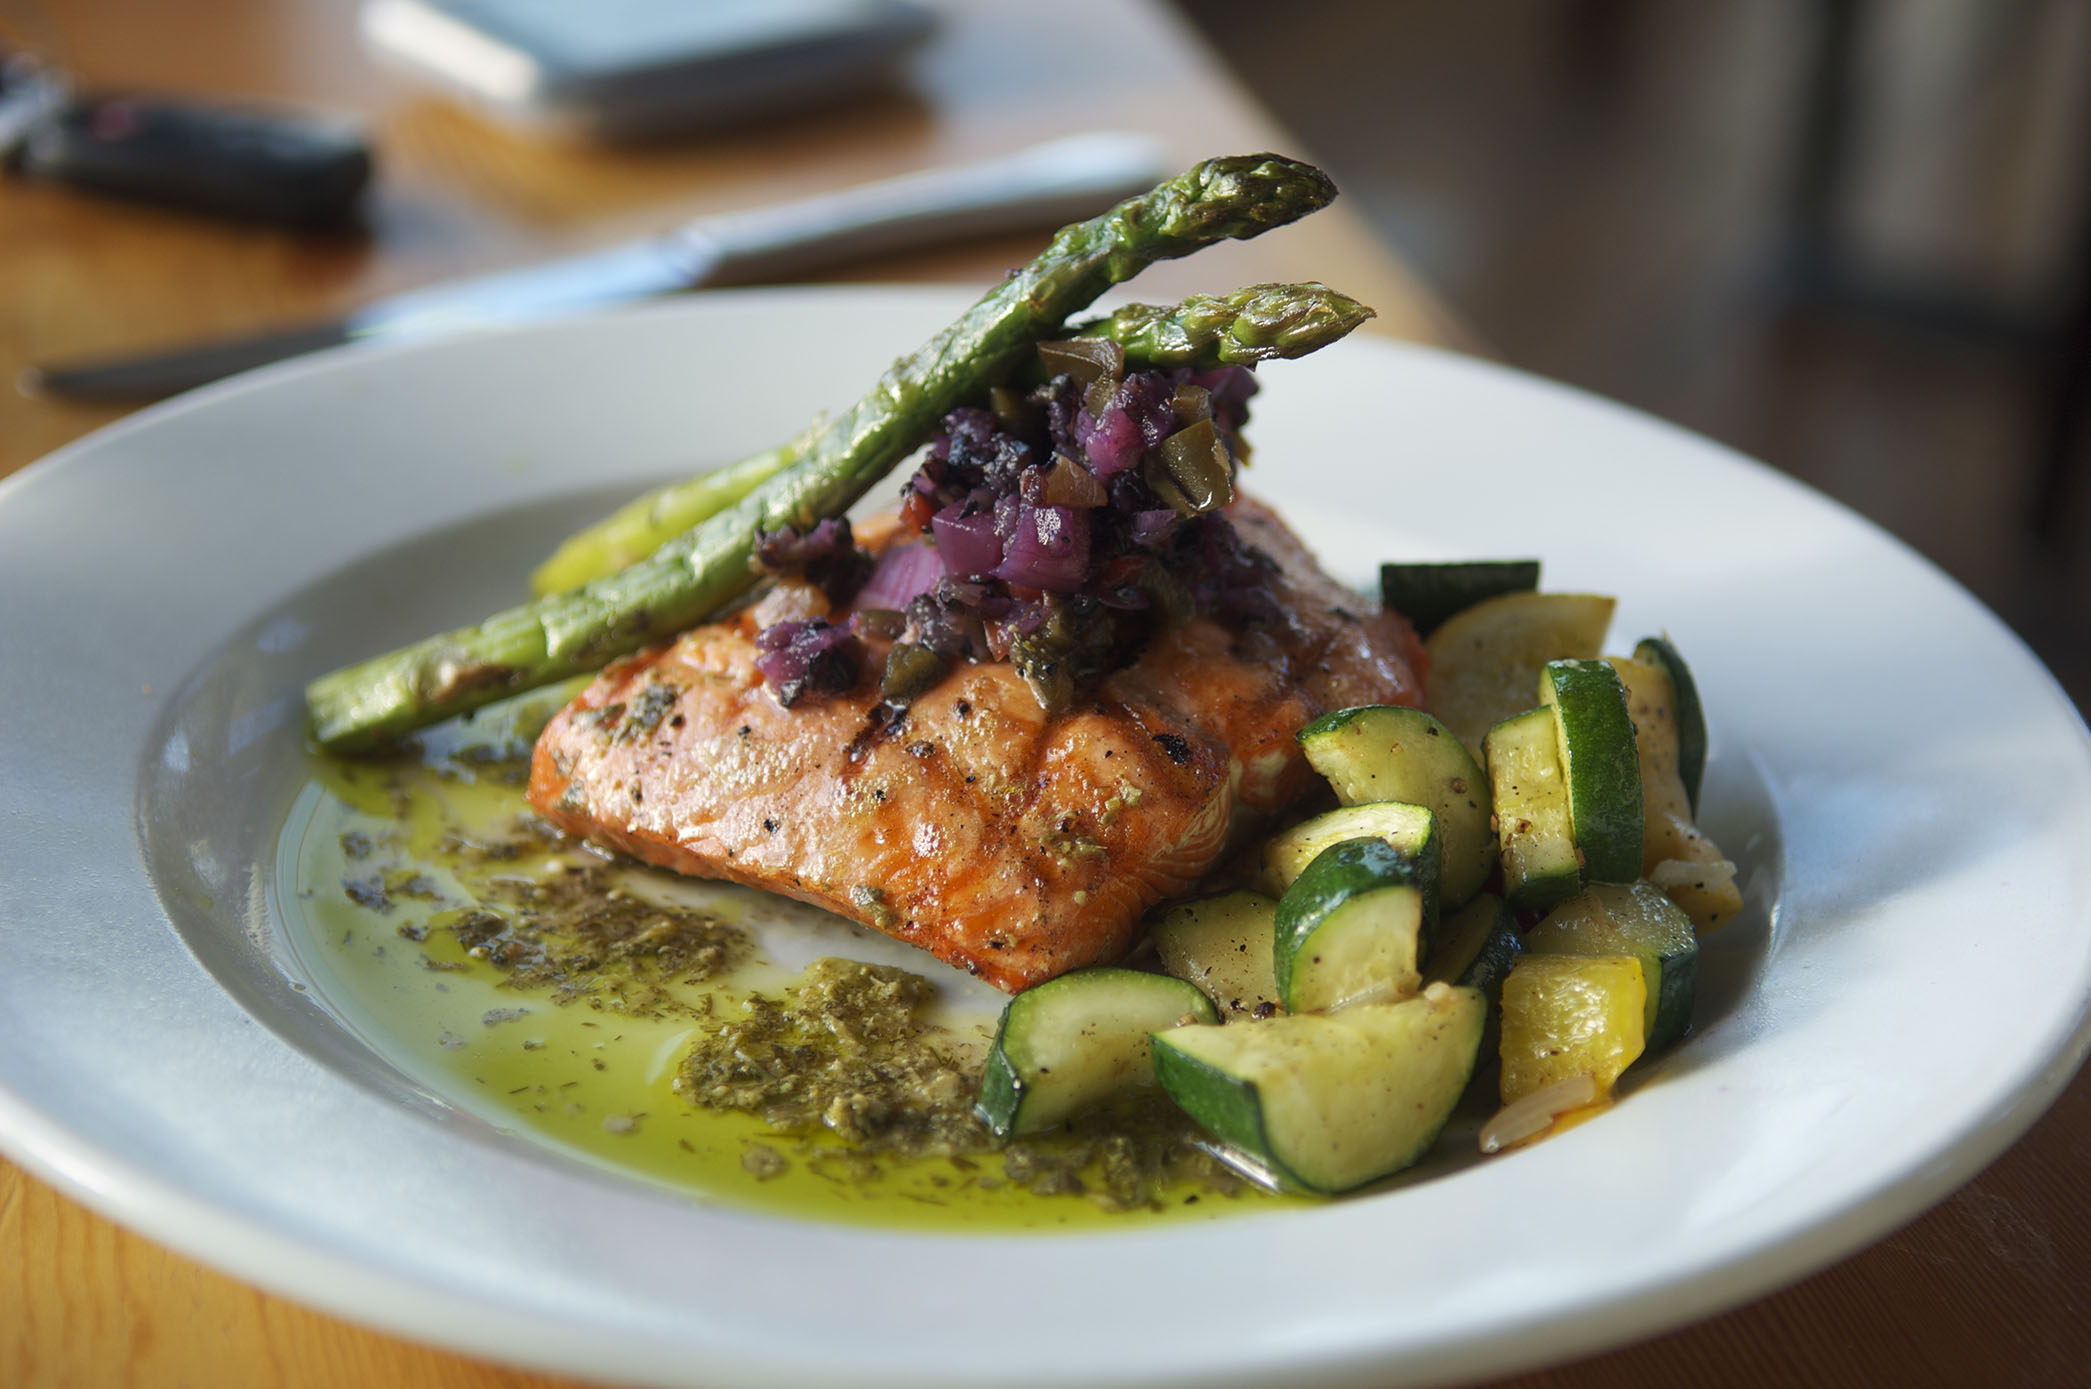 food photo, salmon